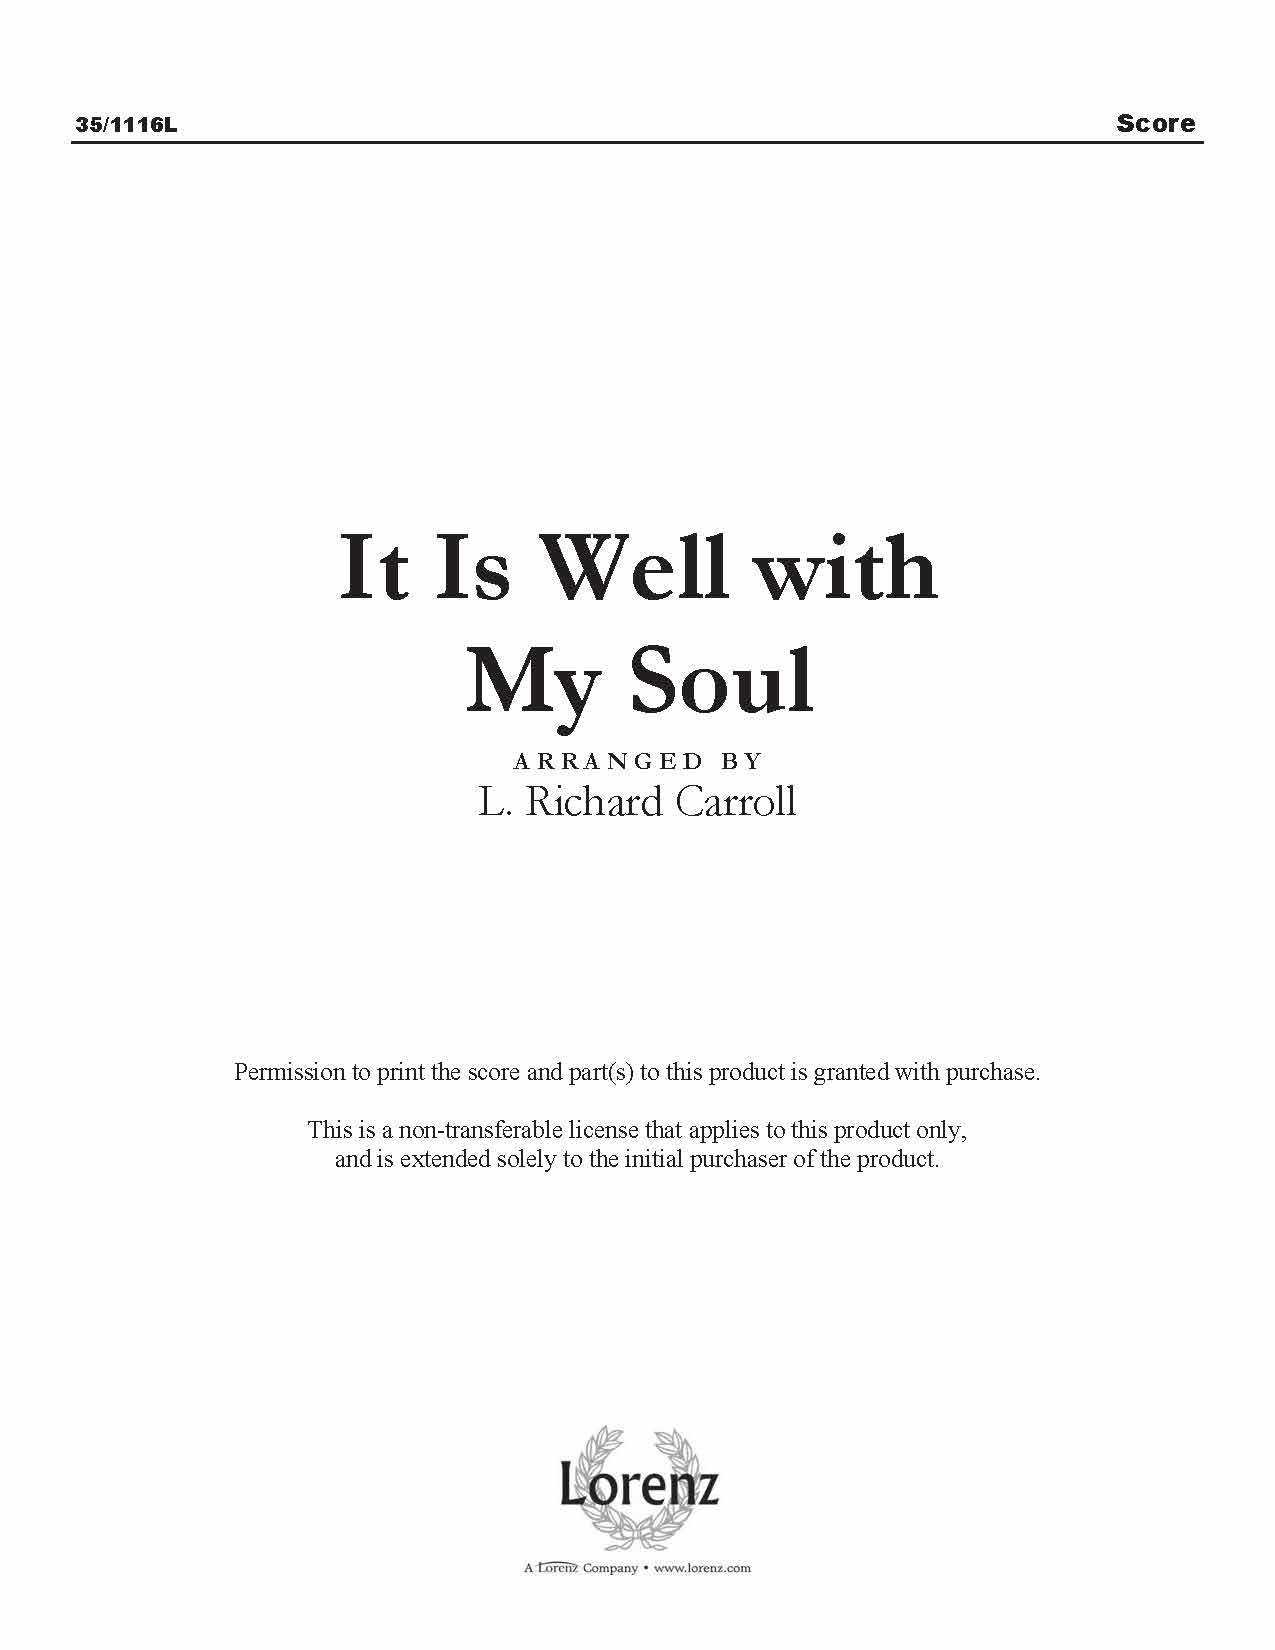 It Is Well with My Soul (Digital Delivery)